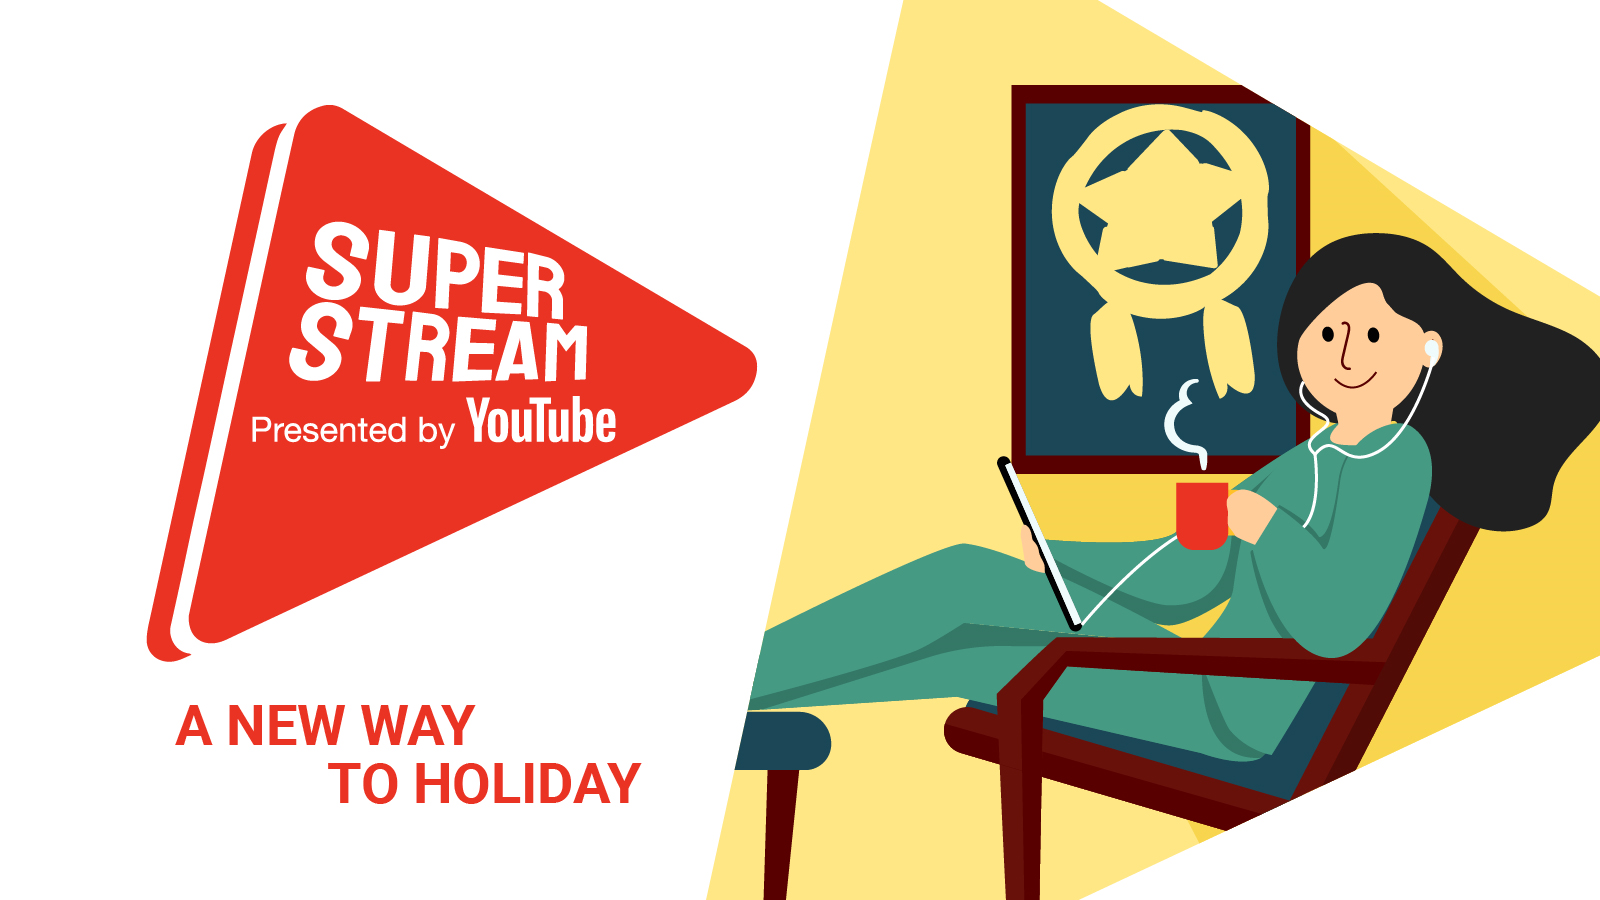 YouTube extends Super Stream to provide free access to content during the holiday season